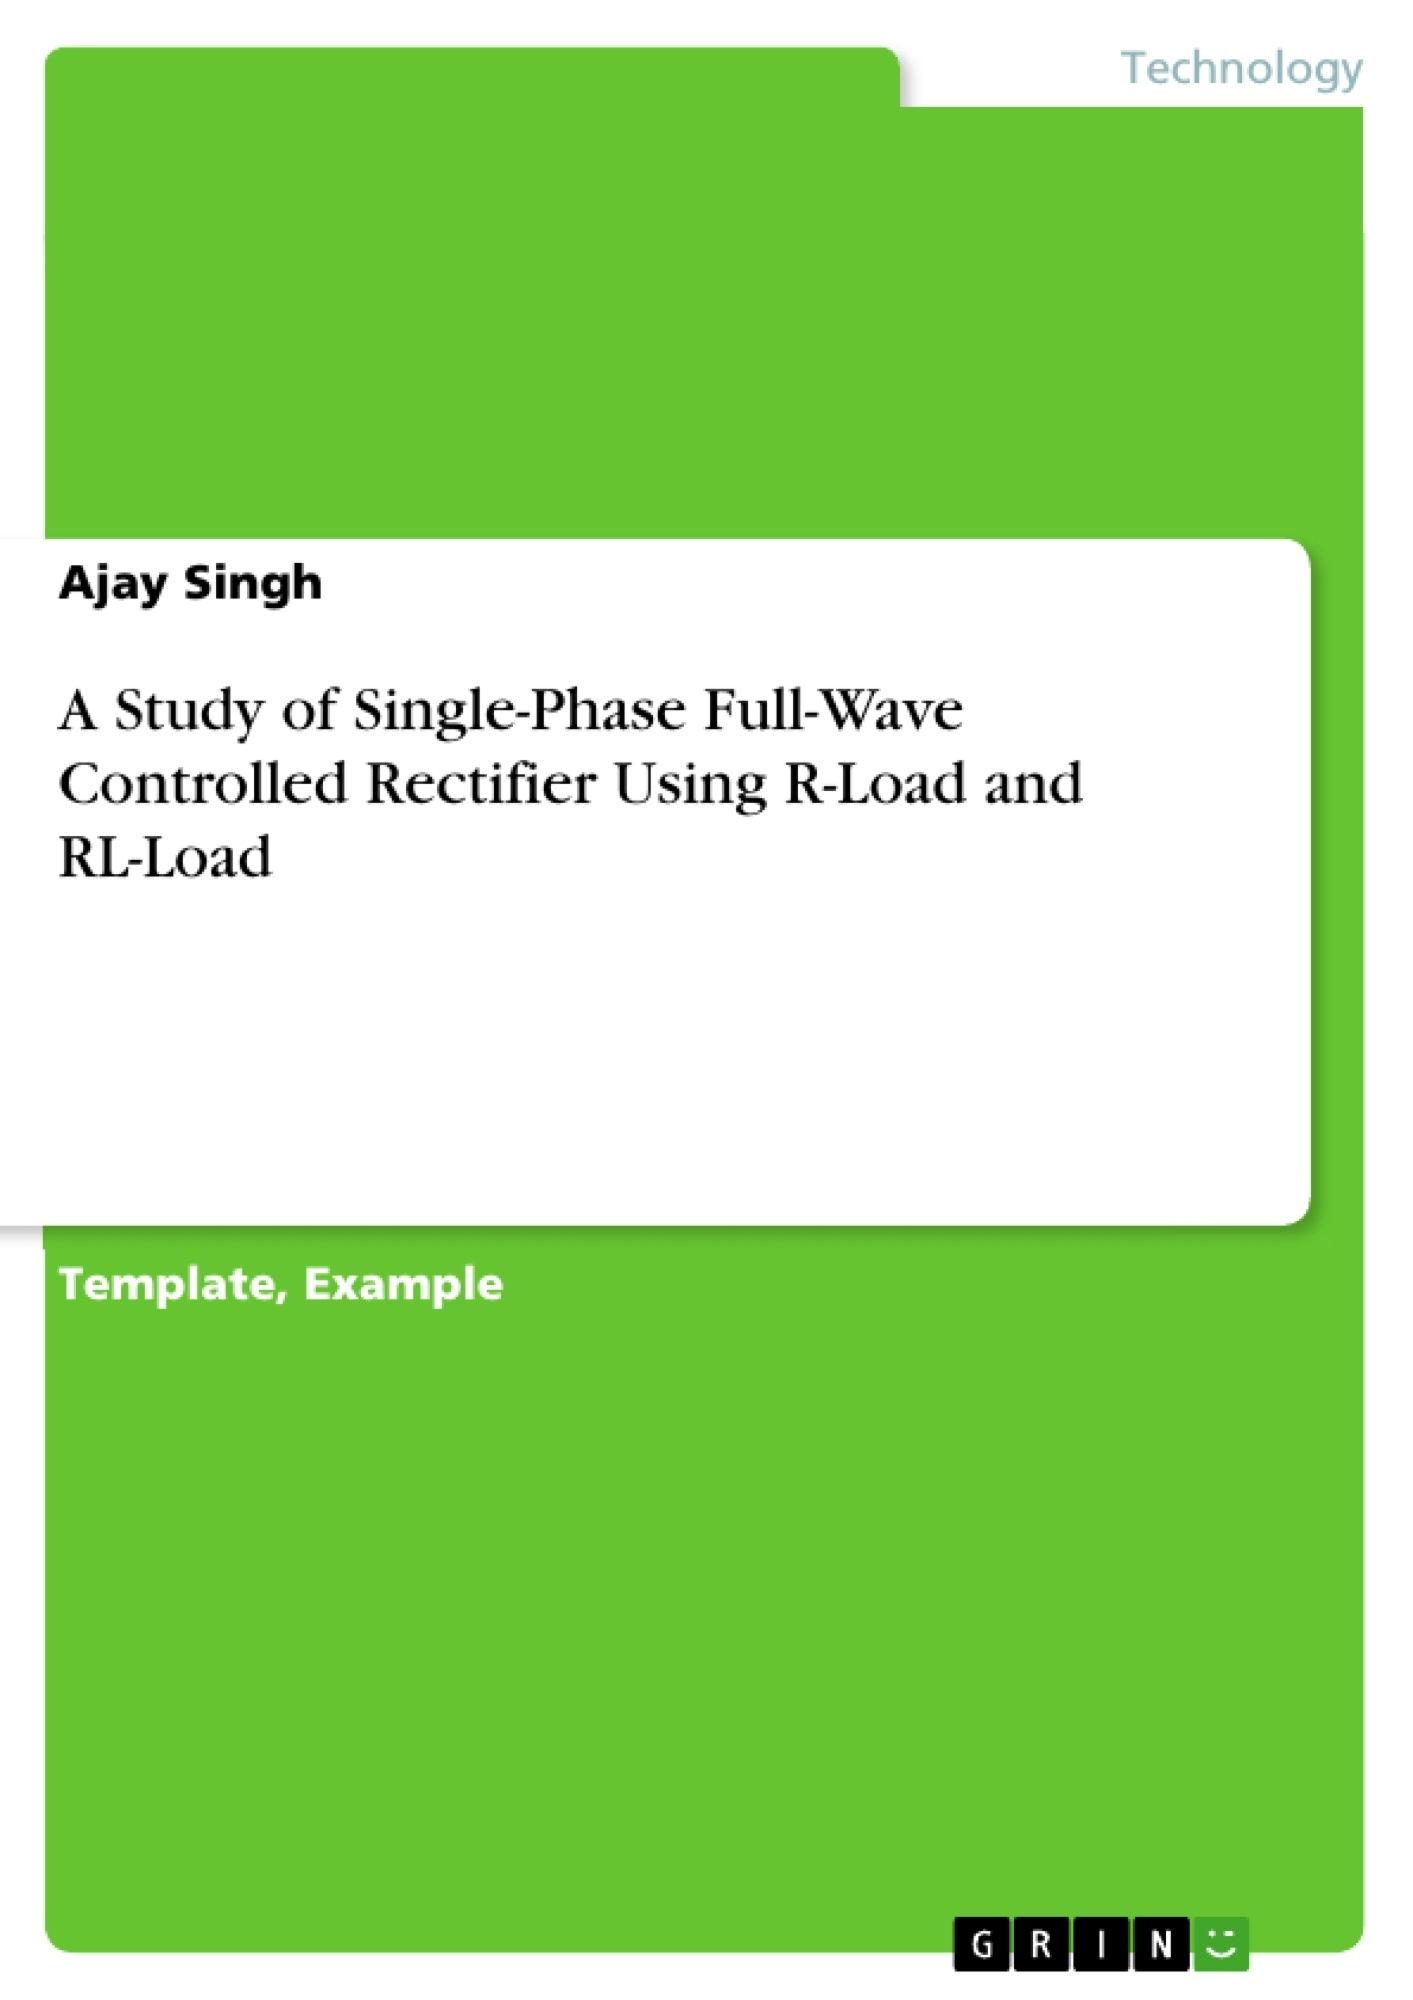 Title: A Study of Single-Phase Full-Wave Controlled Rectifier Using R-Load and RL-Load